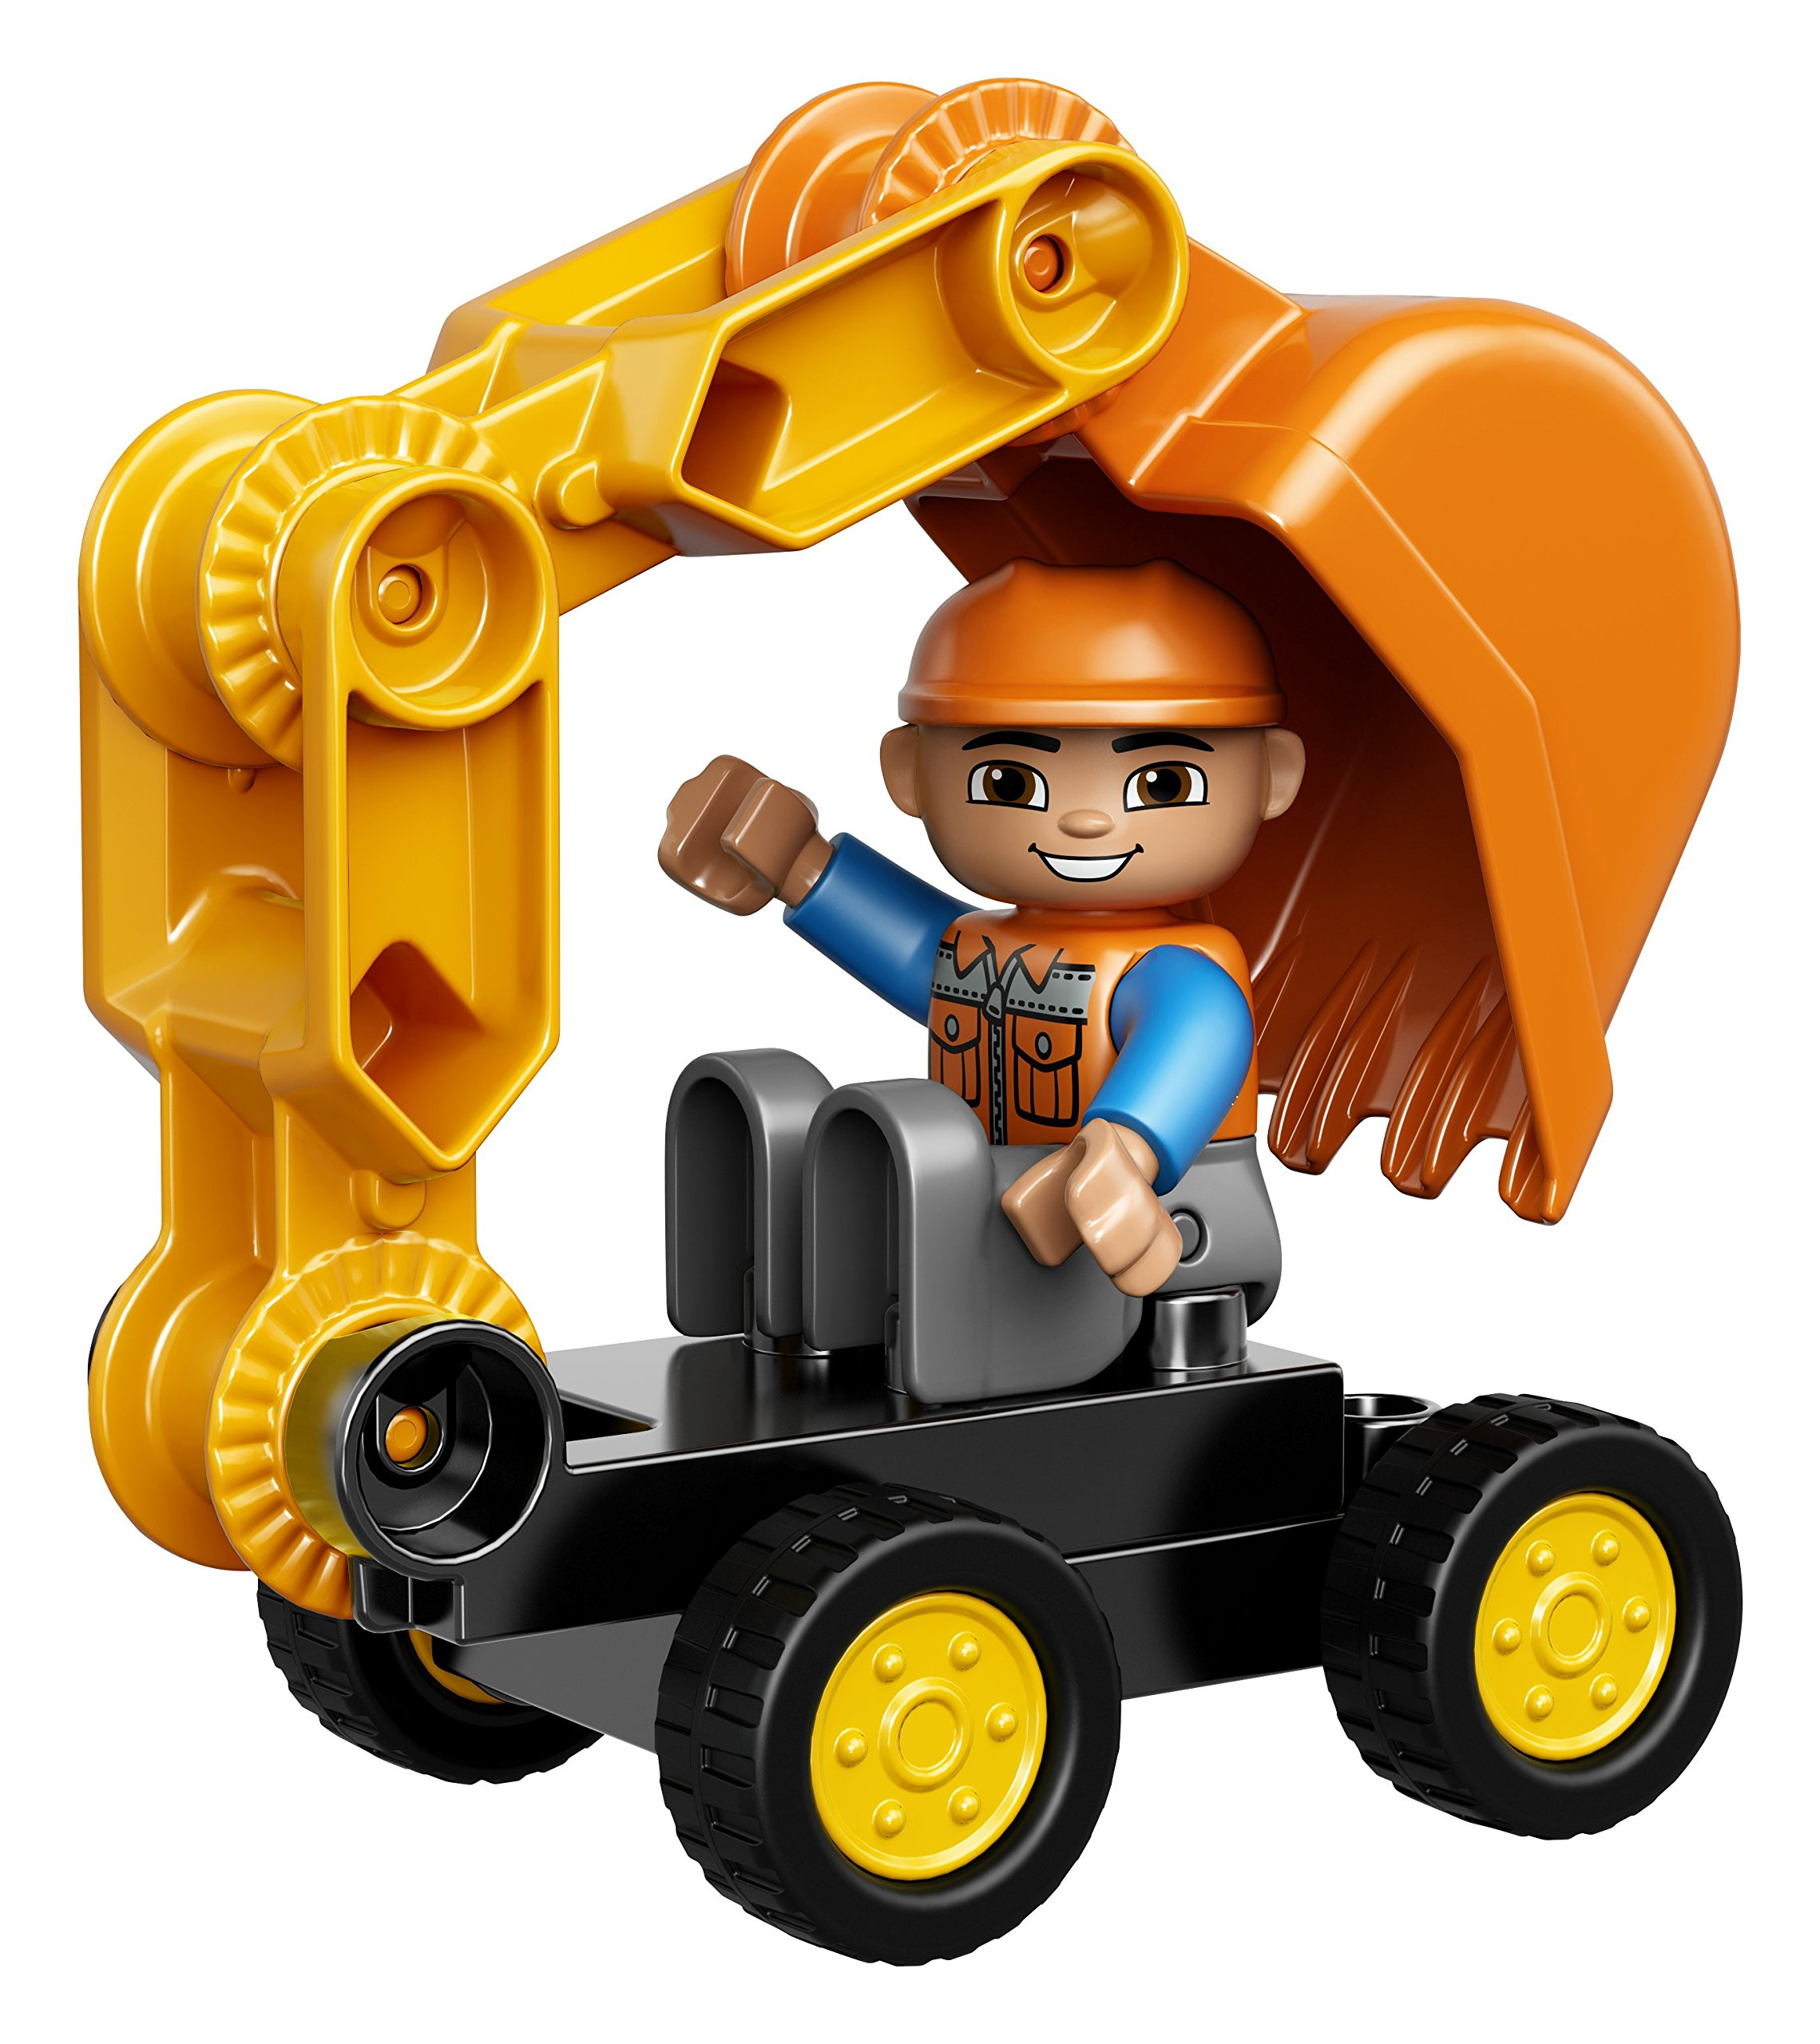 LEGO DUPLO Town Toddler Truck Toy by LEGO (Image #7)